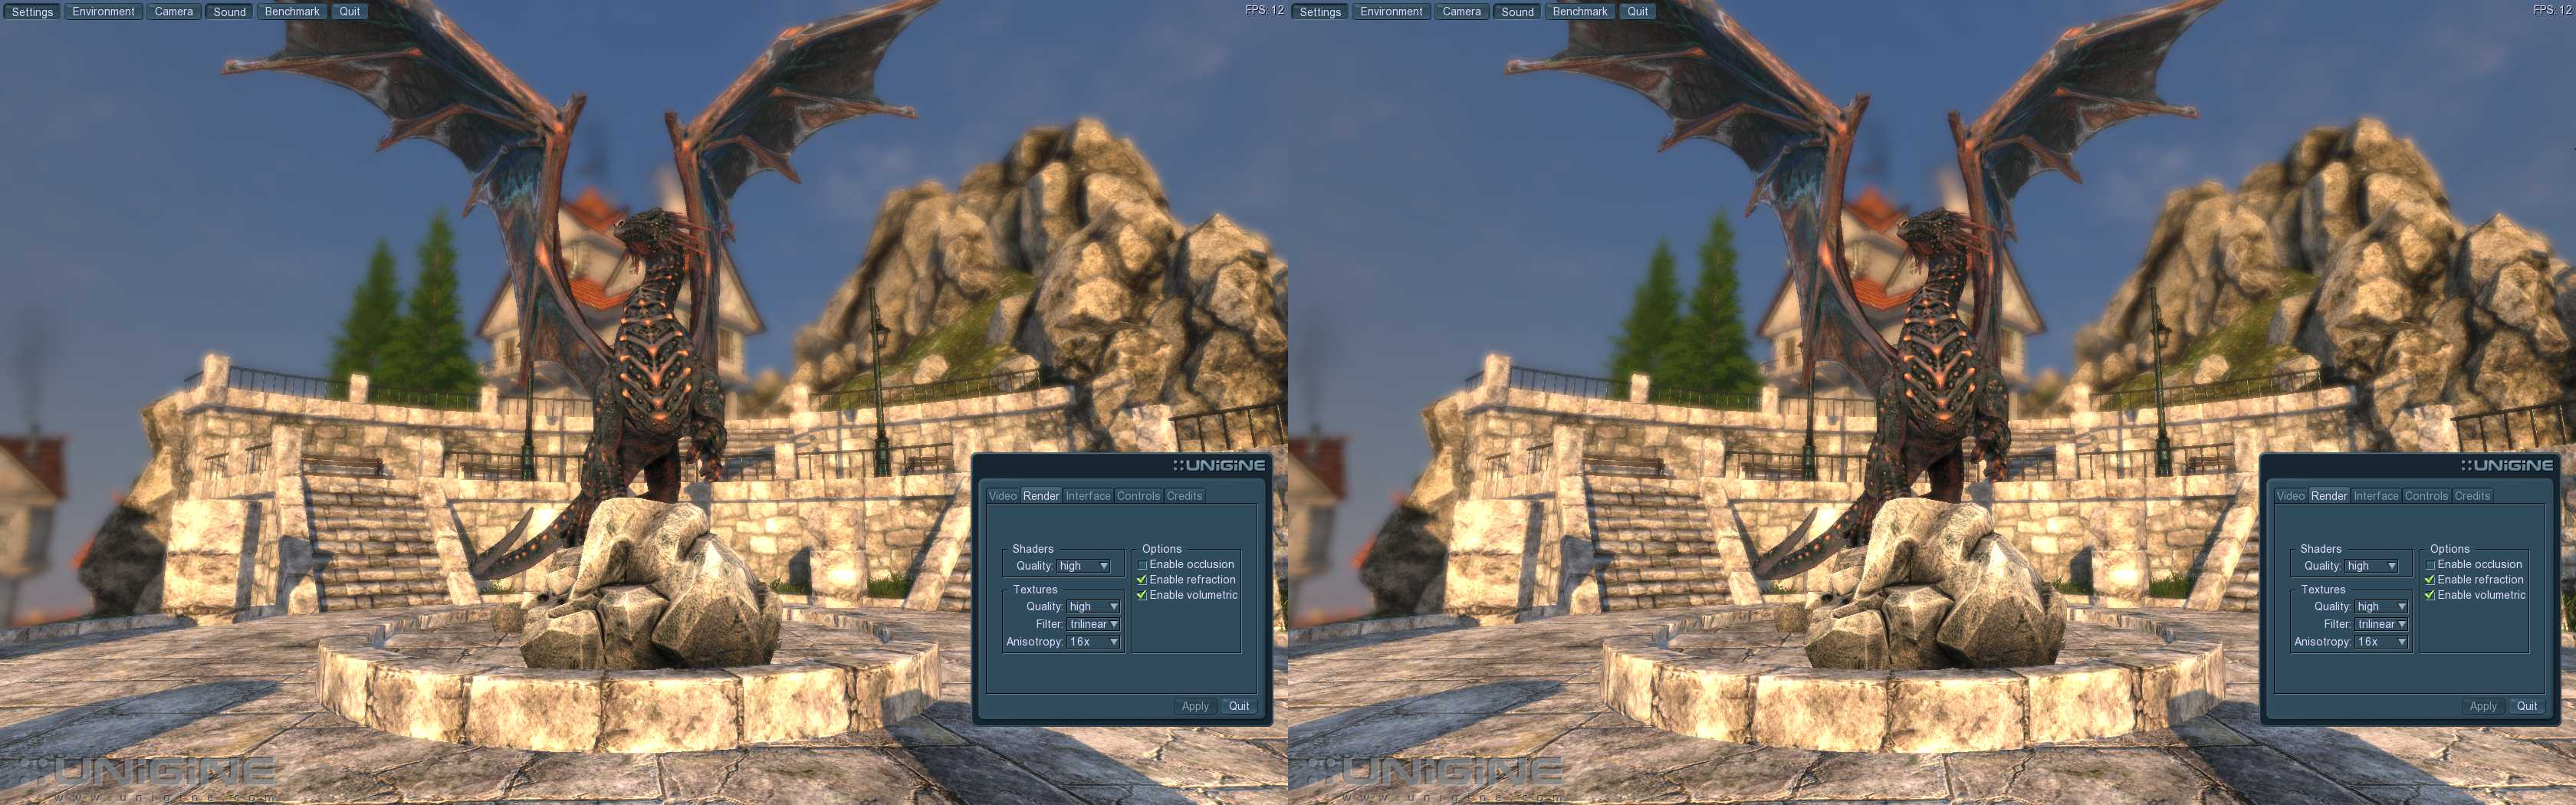 Unigine is a Real-time 3D Engine with Stereoscopic 3D Support - 3D